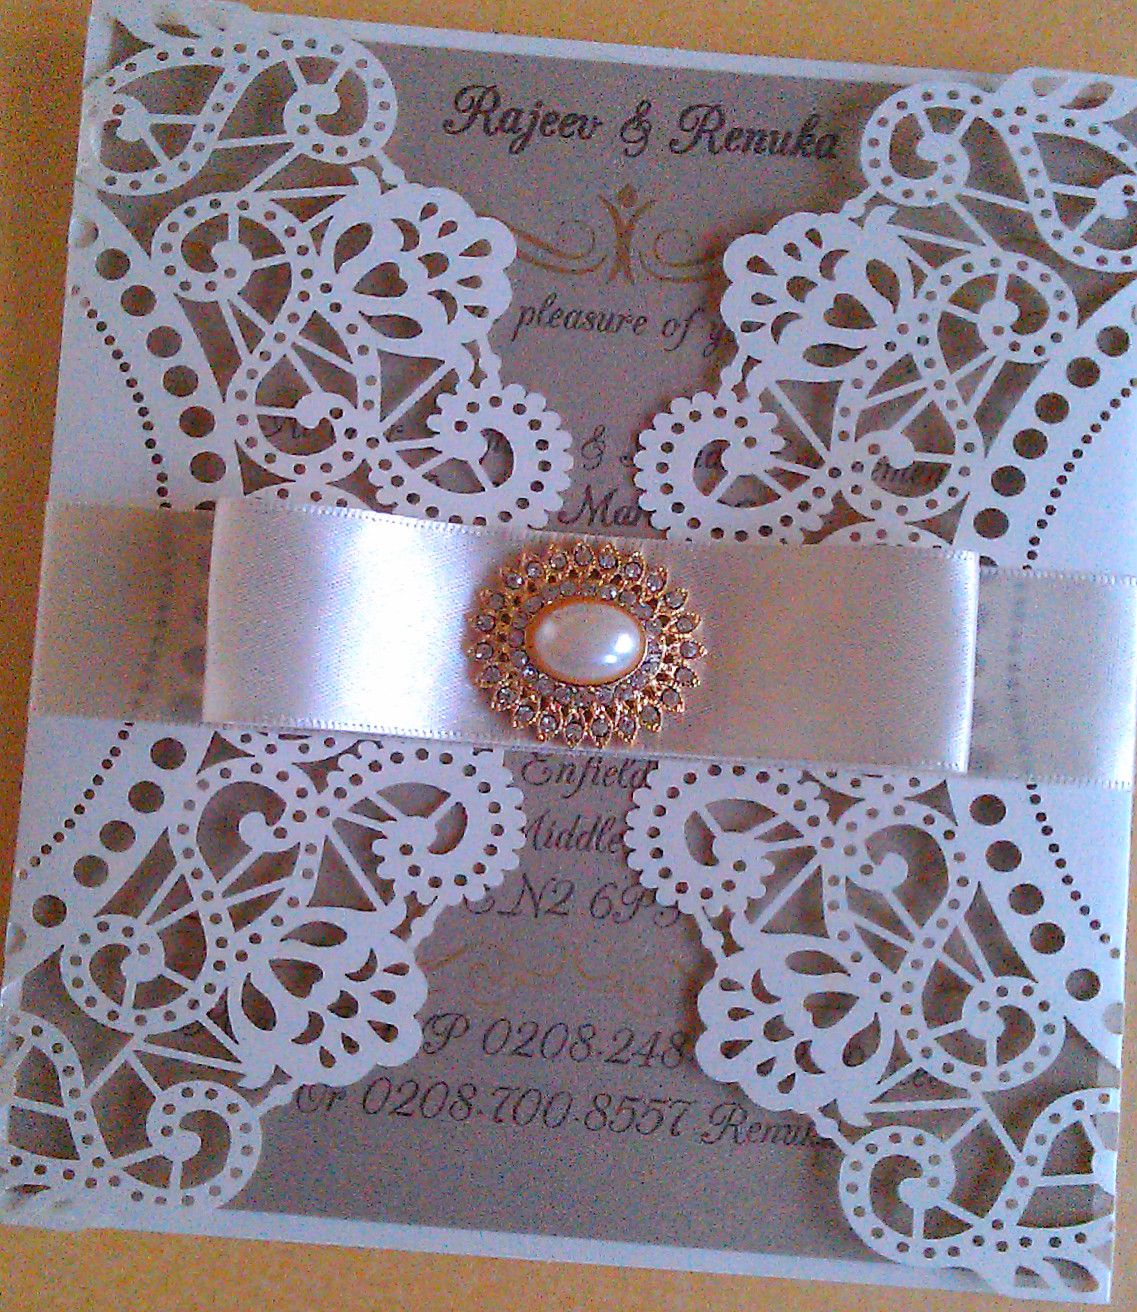 Ivory pearlescent vintage doily wedding invitation with Gold insert ...